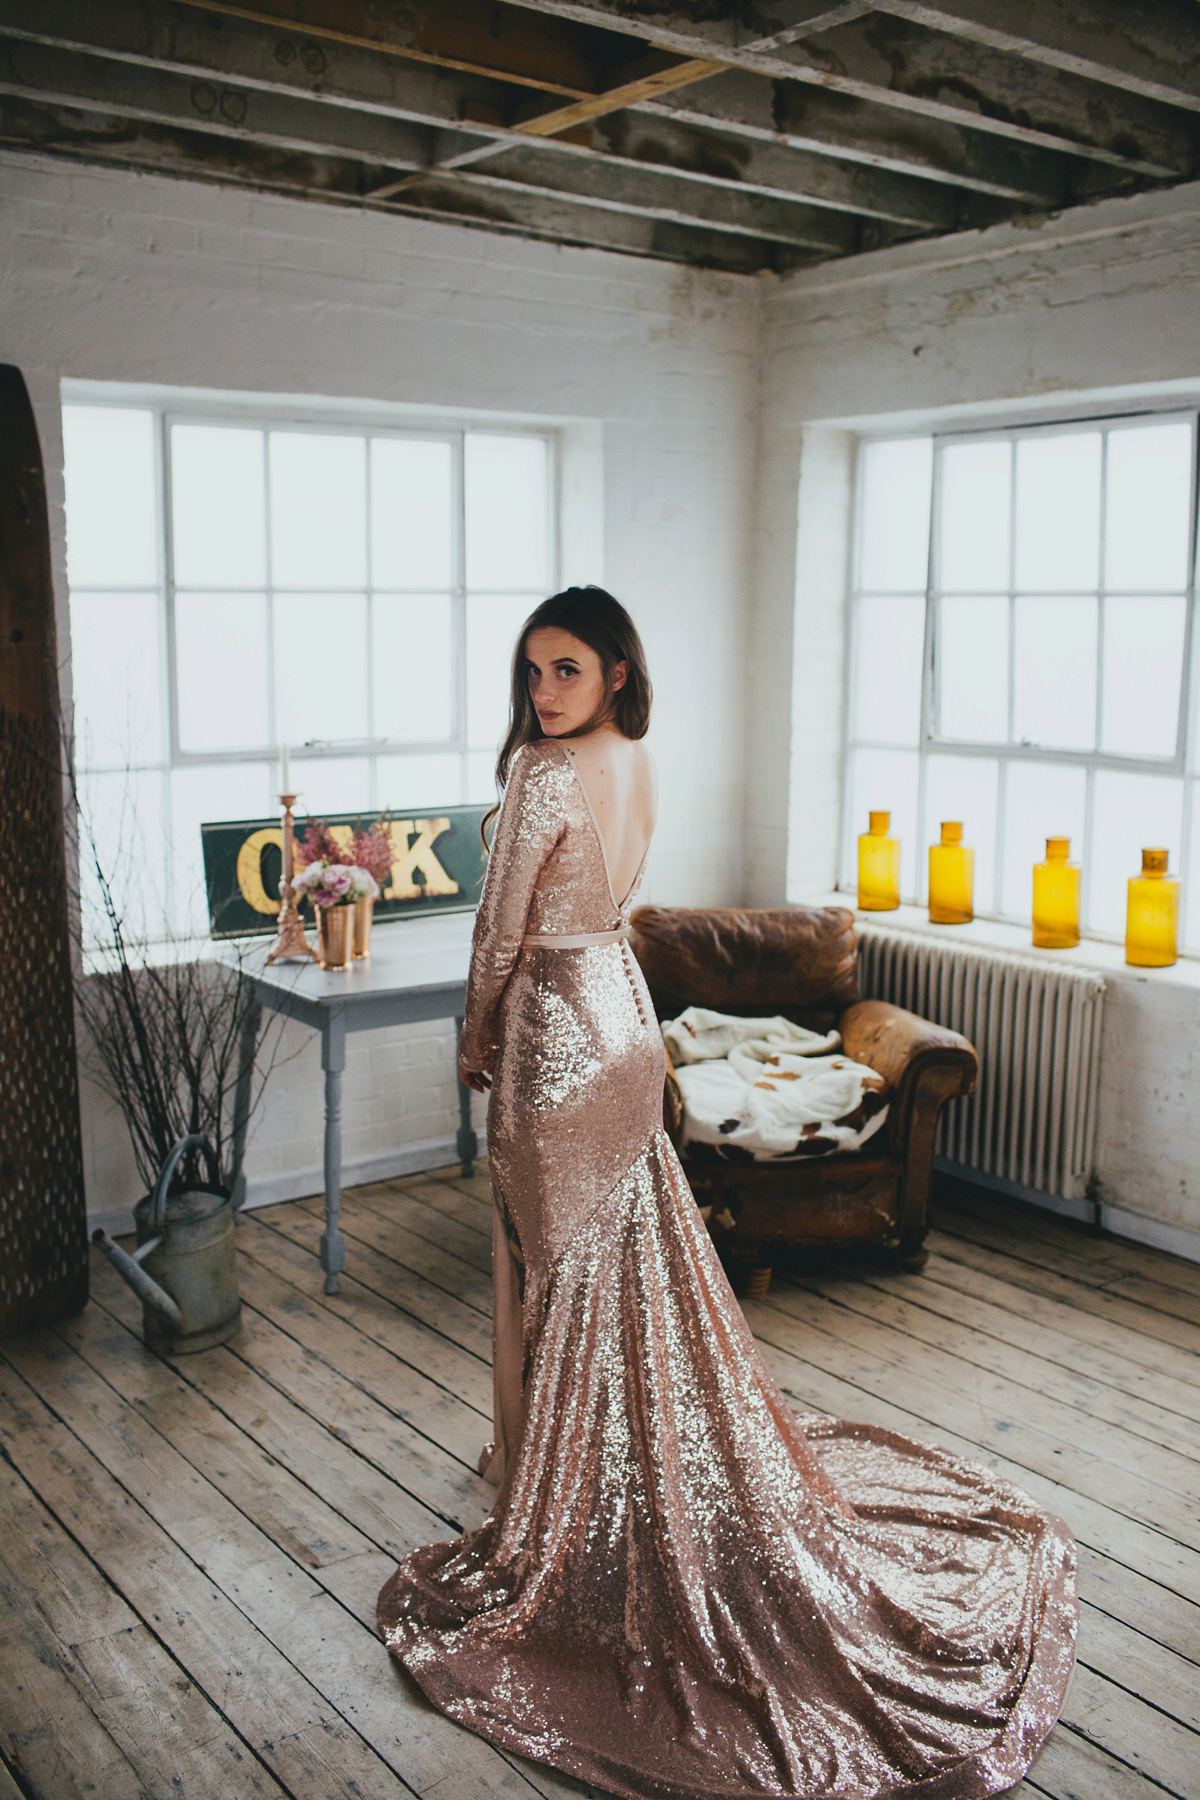 A Pink Sequin Gown for an Earth-friendly and Vegan London Wedding